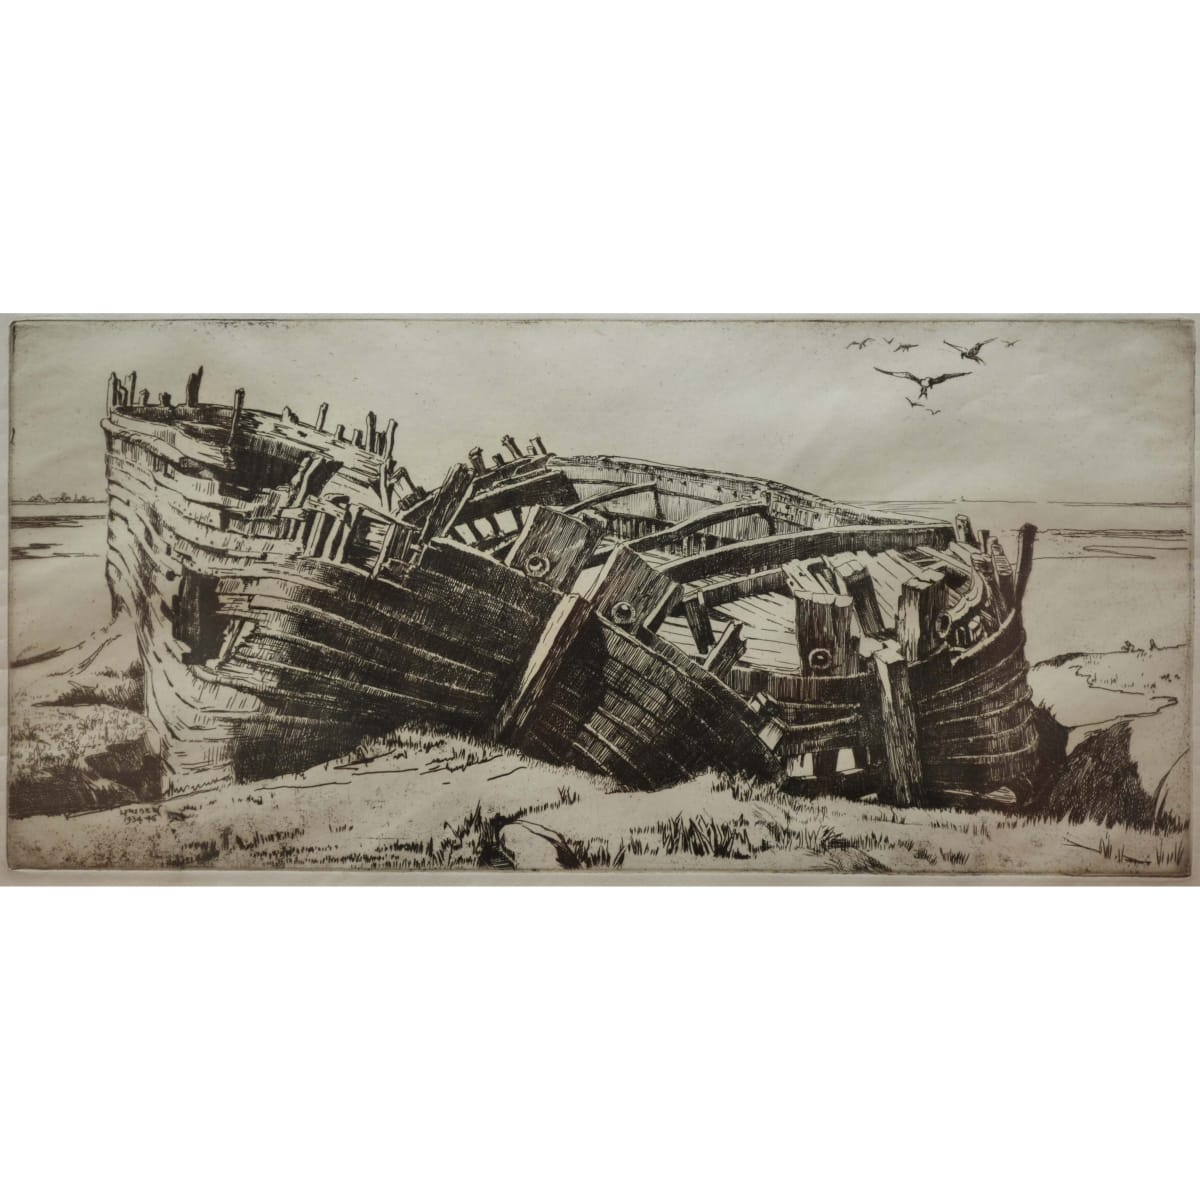 Ernest Stephen Lumsden Shipwreck signed and dated 1934-46 in plate etching 13 1/4 x 20 inches